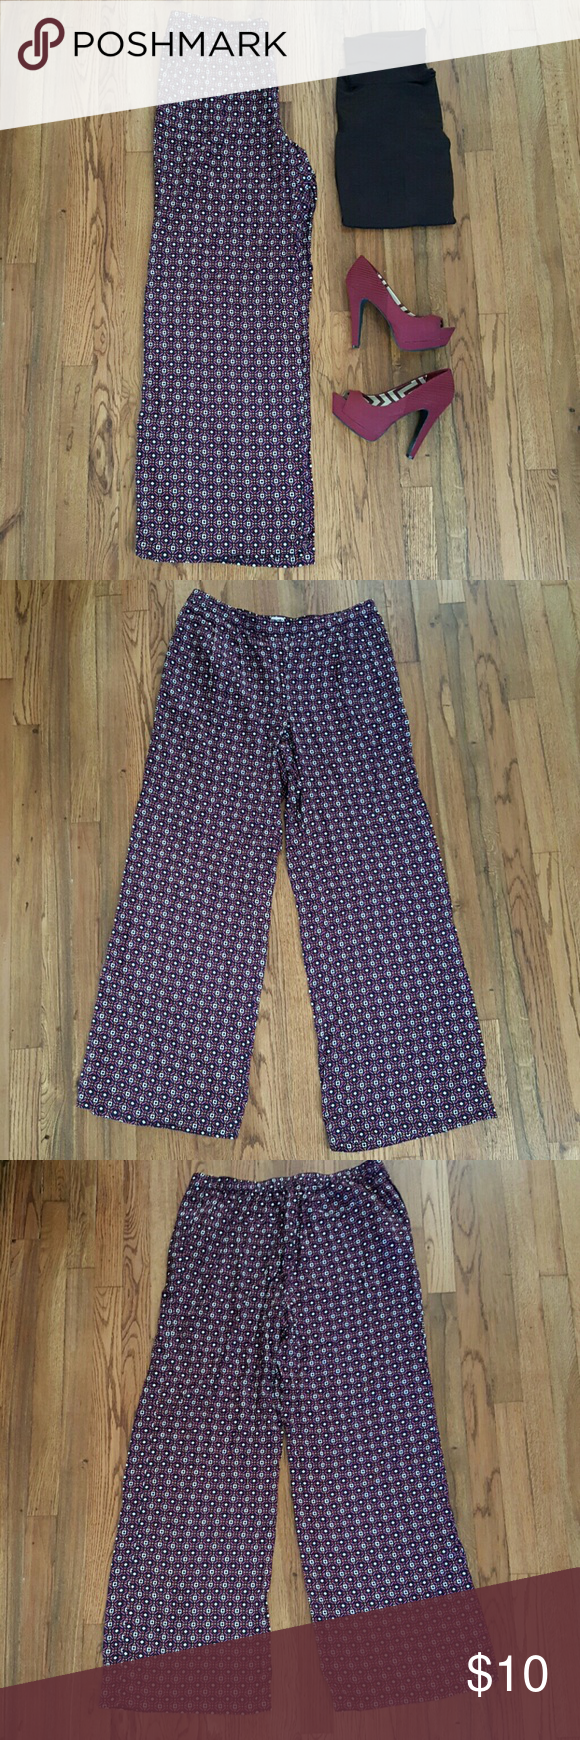 "NWOT MERONA Purple Blue Wide Leg Boho Pants Purple Blue Ivory Orange. Geometric Print. Pull On. Mid Rise. 2 Side Pockets. 100% Rayon.   Waist 16"" Rise 11.5"" Inseam 33""  New without tags.  Brand has been marked out on tag to prevent return. Merona Pants"